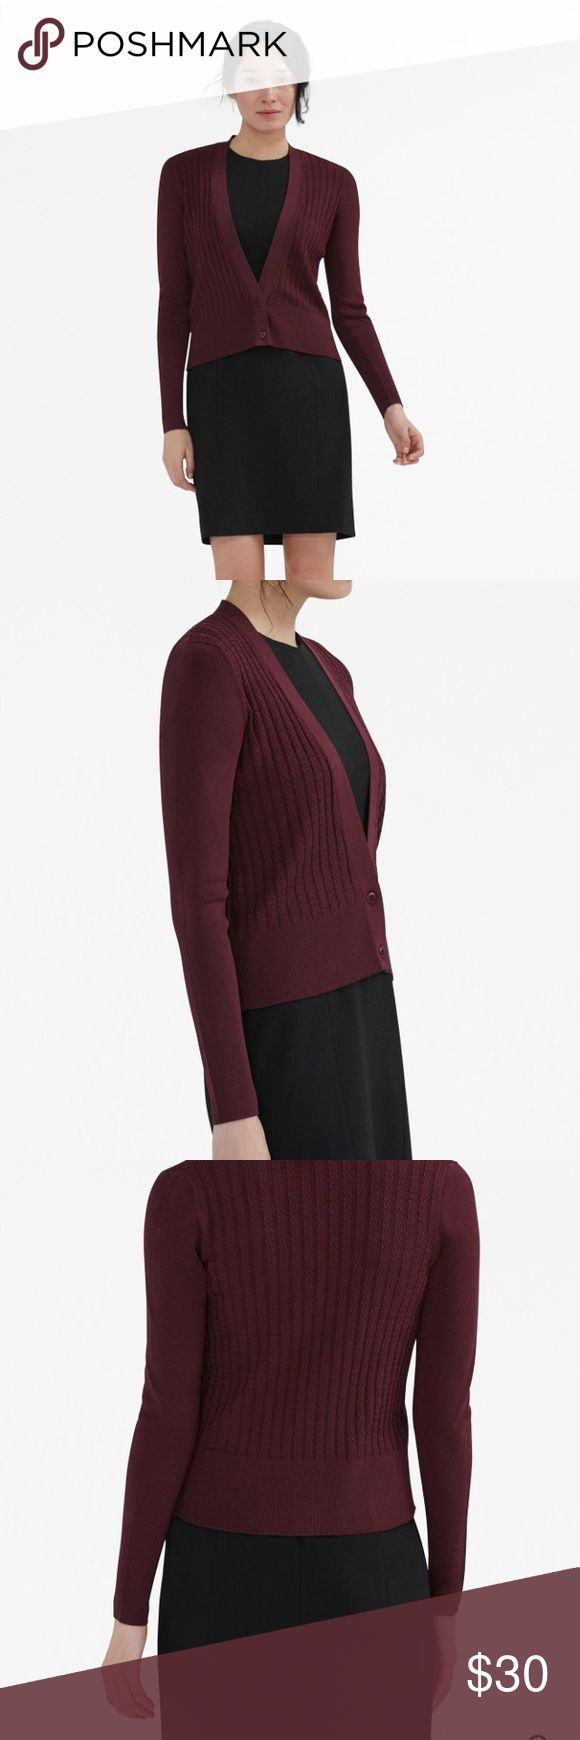 The Lange Cardigan | L A sharp take on the classic cardigan, this luxe, tuxedo-inspired piece is knit from a polished yarn in a dense, mini-cable stitch pattern. The cropped length is designed to hit at the true waist, while a low-cut V-neck shows off your favorite power dress. Nordstrom Sweaters Cardigans